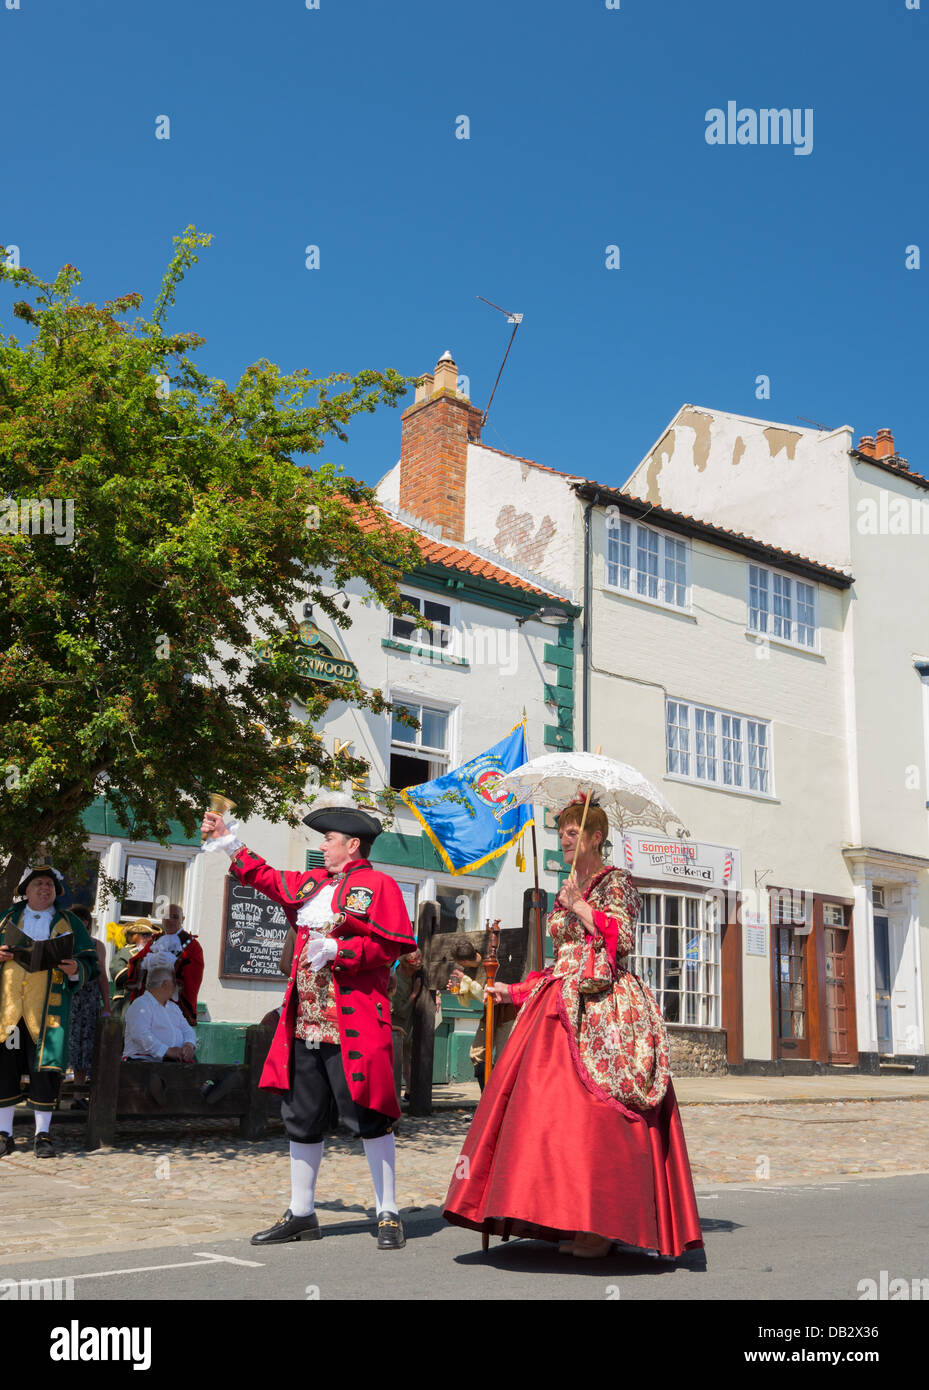 Town crier competing in the town crier competition in the Bridlington Old Town festival - Stock Image